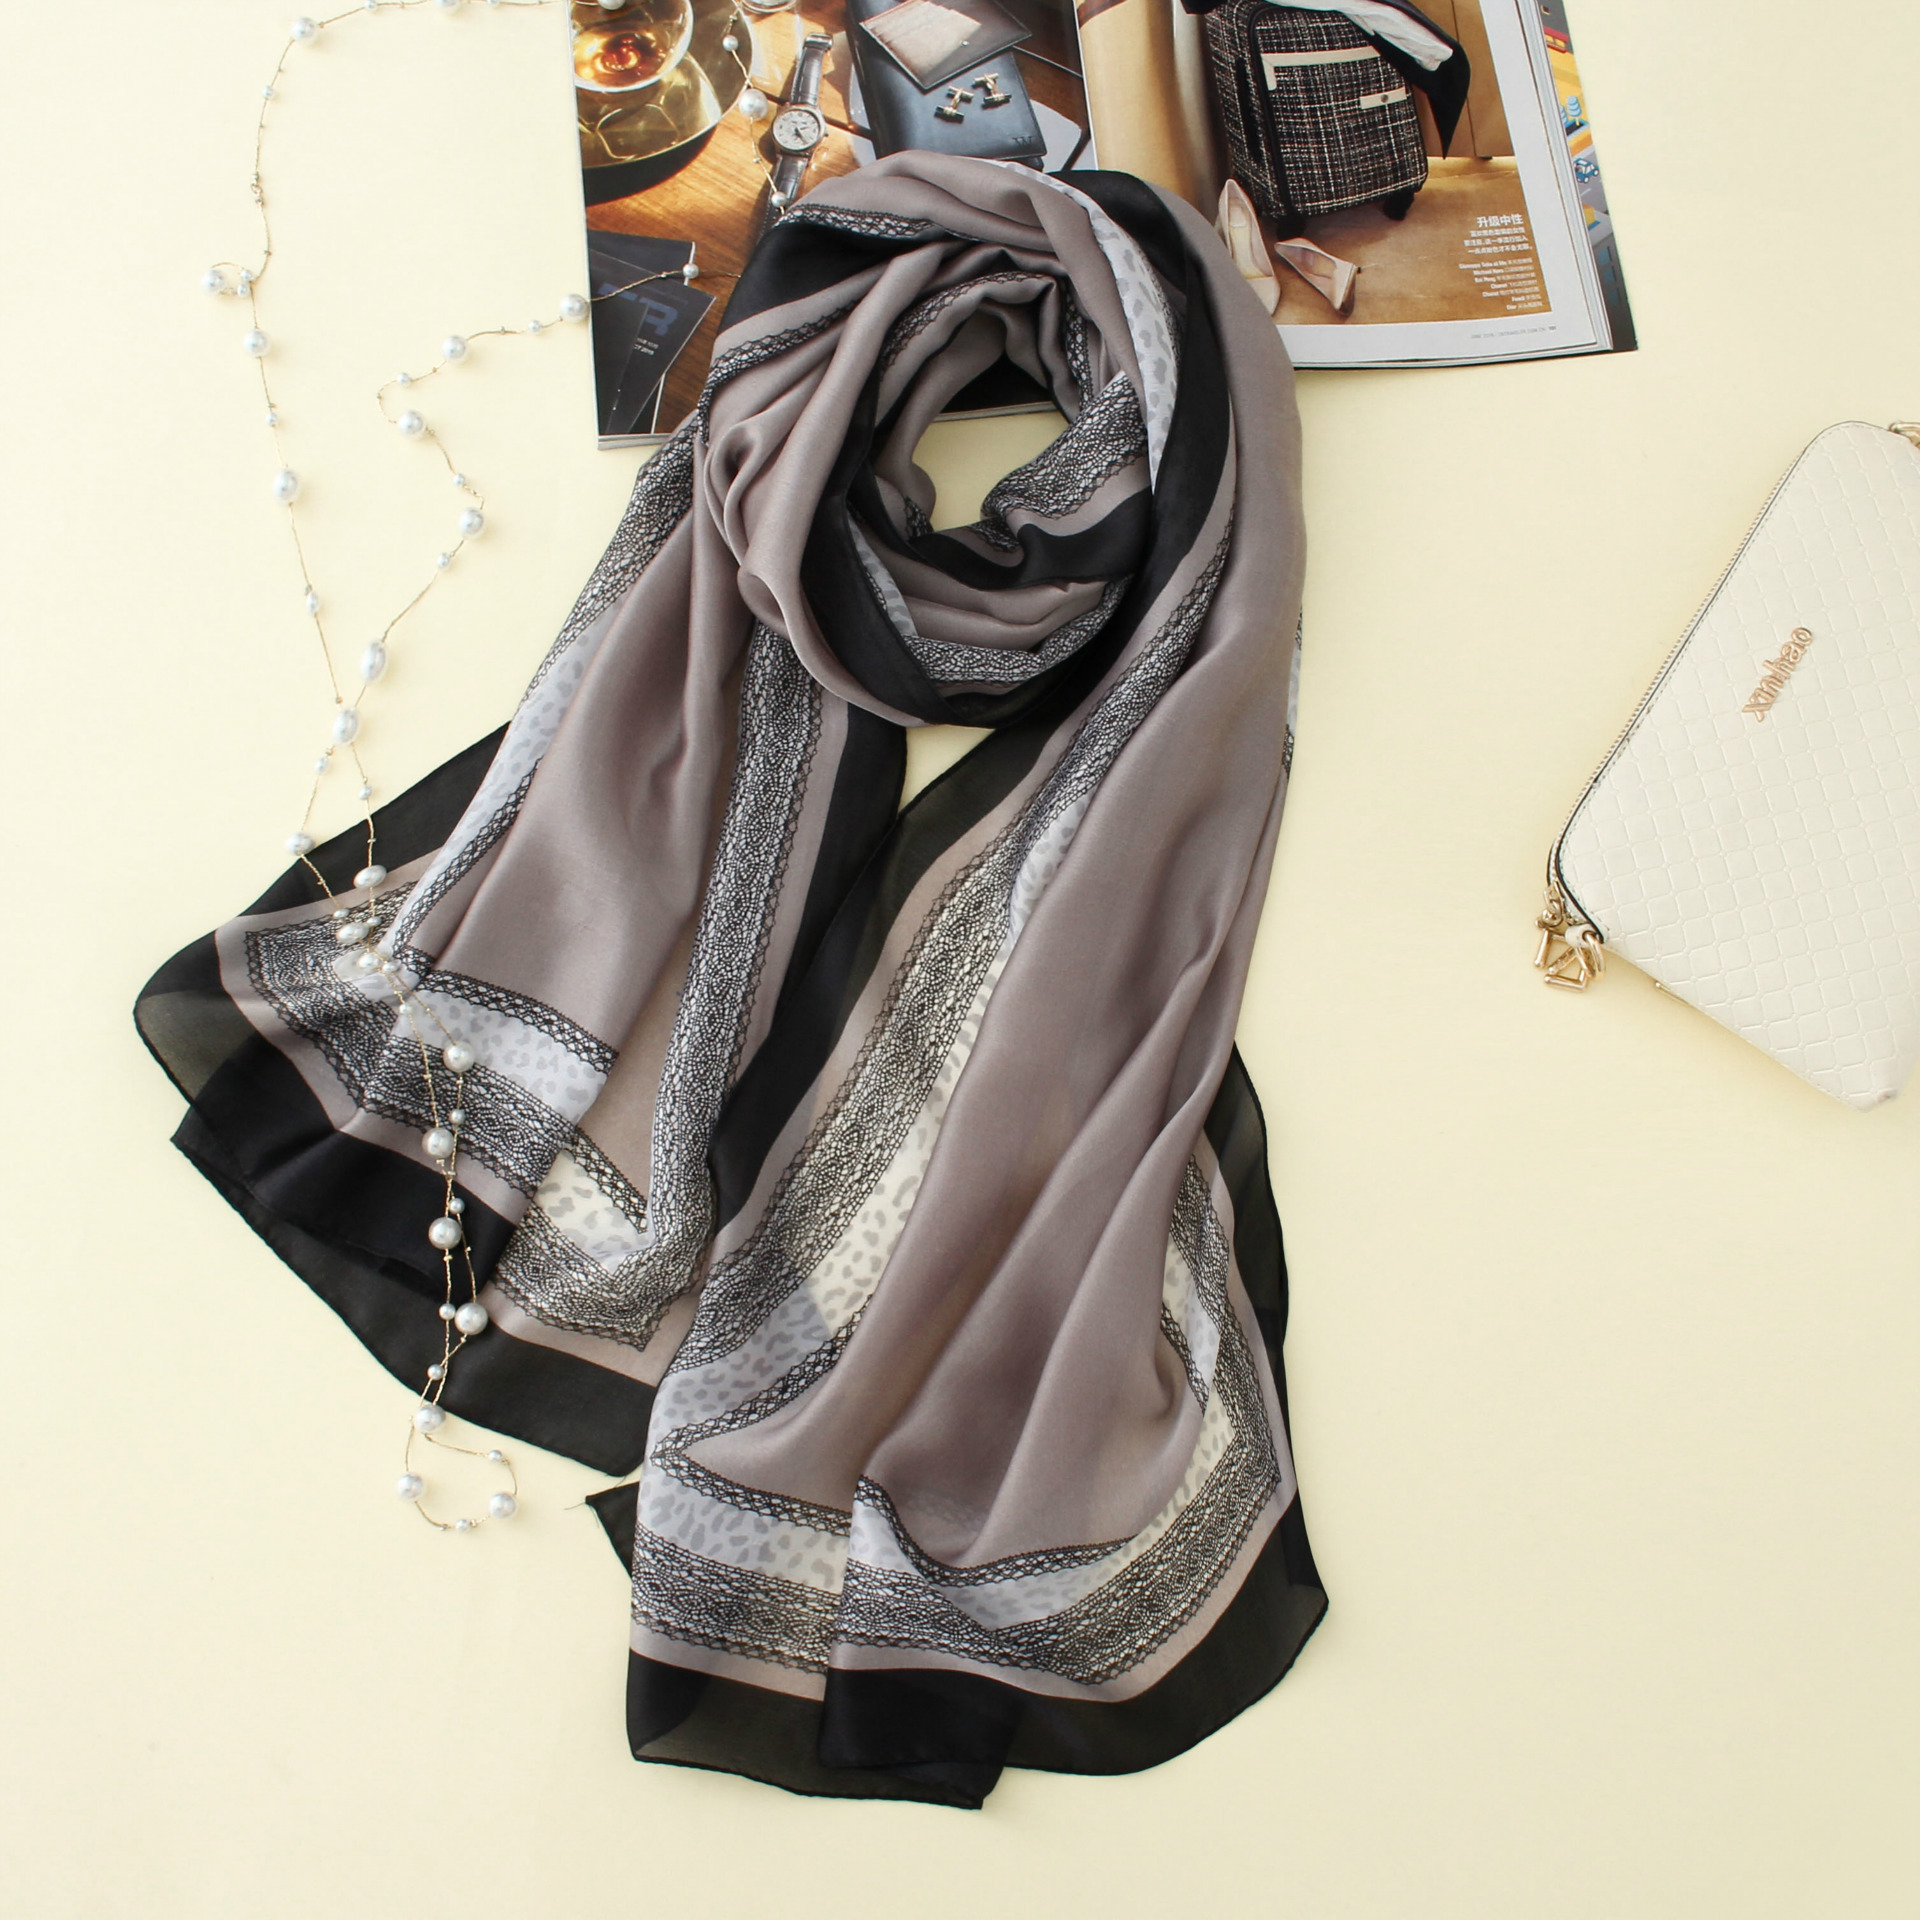 2019 new brand women scarf fashion summer soft print long size shawls silk scarves lady pashmina bandanas 190*80cm